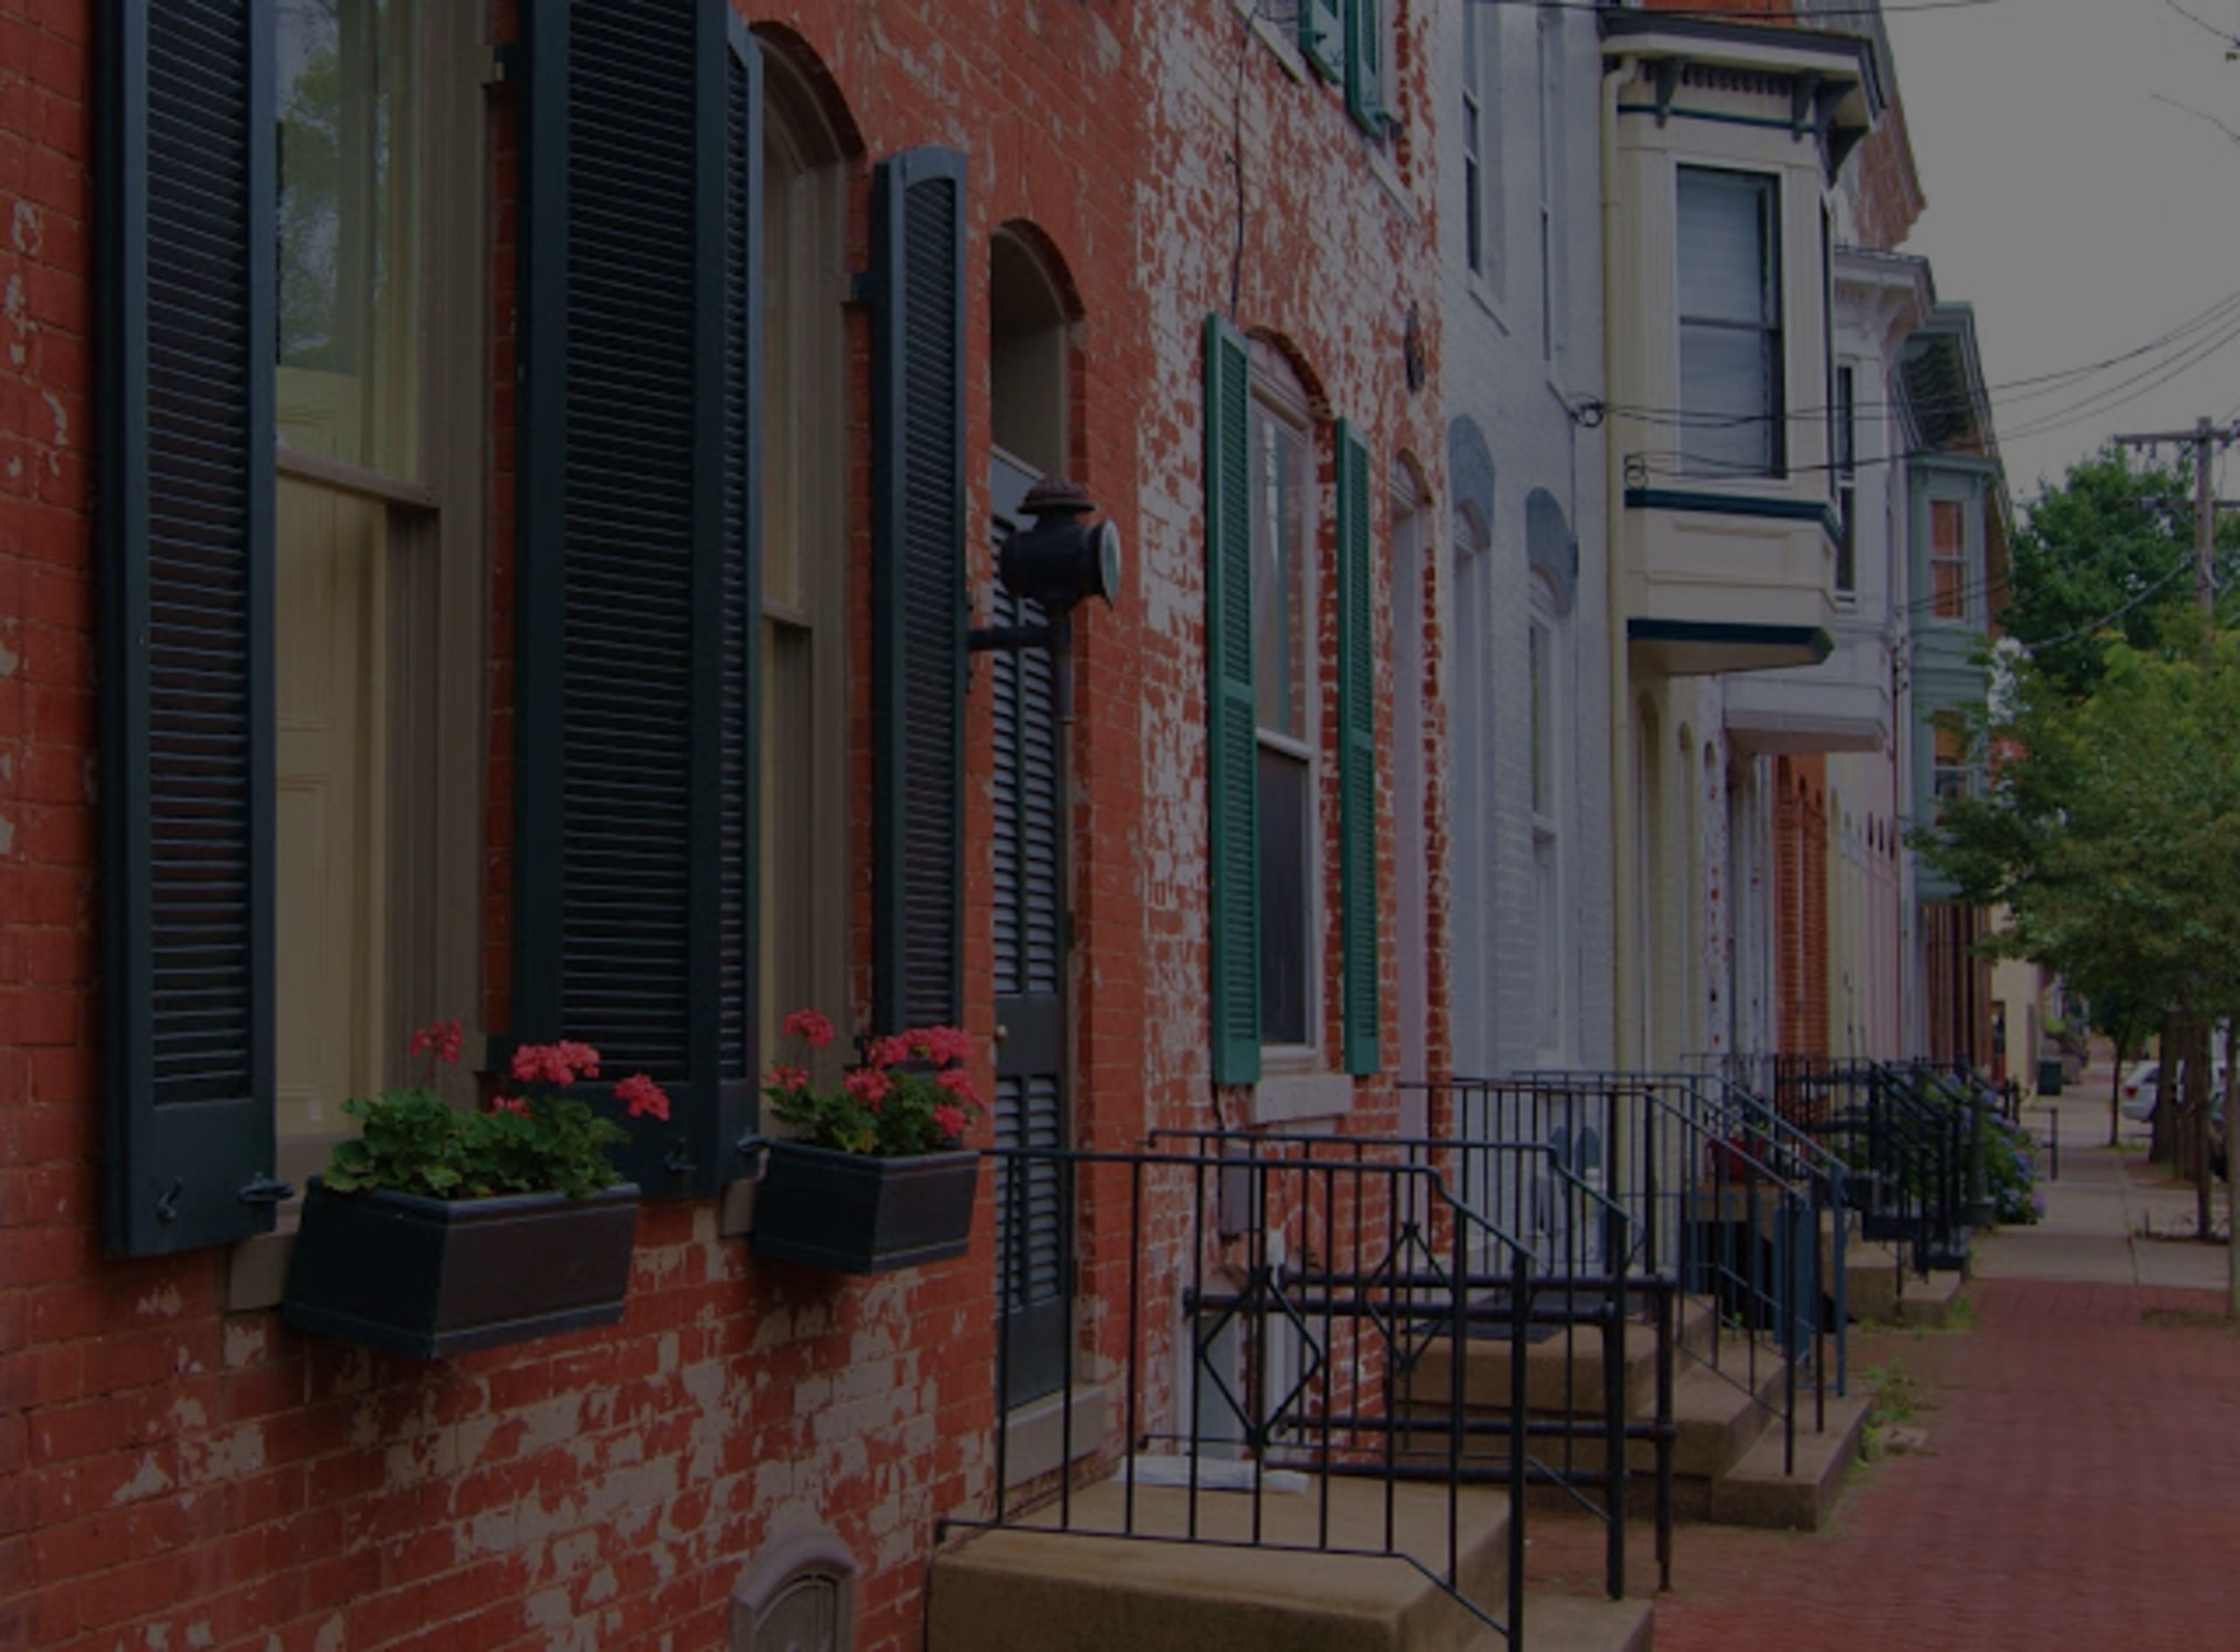 Charming, historical streets